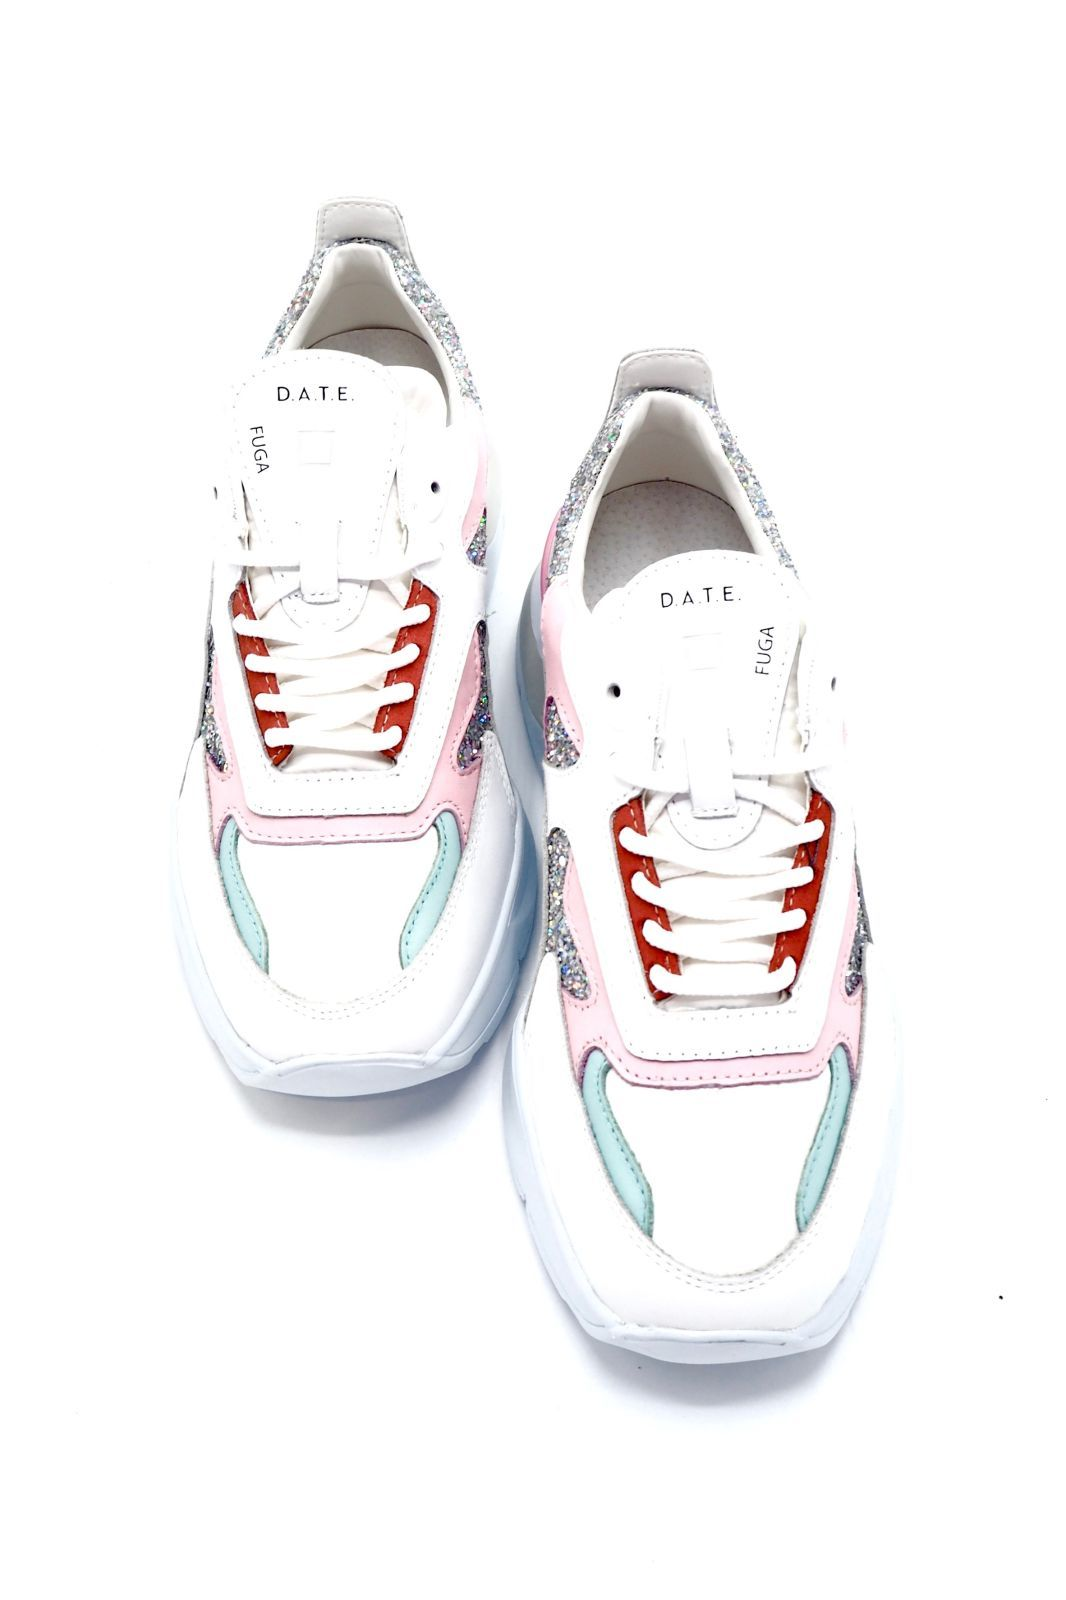 D.A.T.E. basket bas Ciel femmes (D.A.T.E.-Fille tech. multi - FUGA blanc/argent glitter /cie) - Marine | Much more than shoes